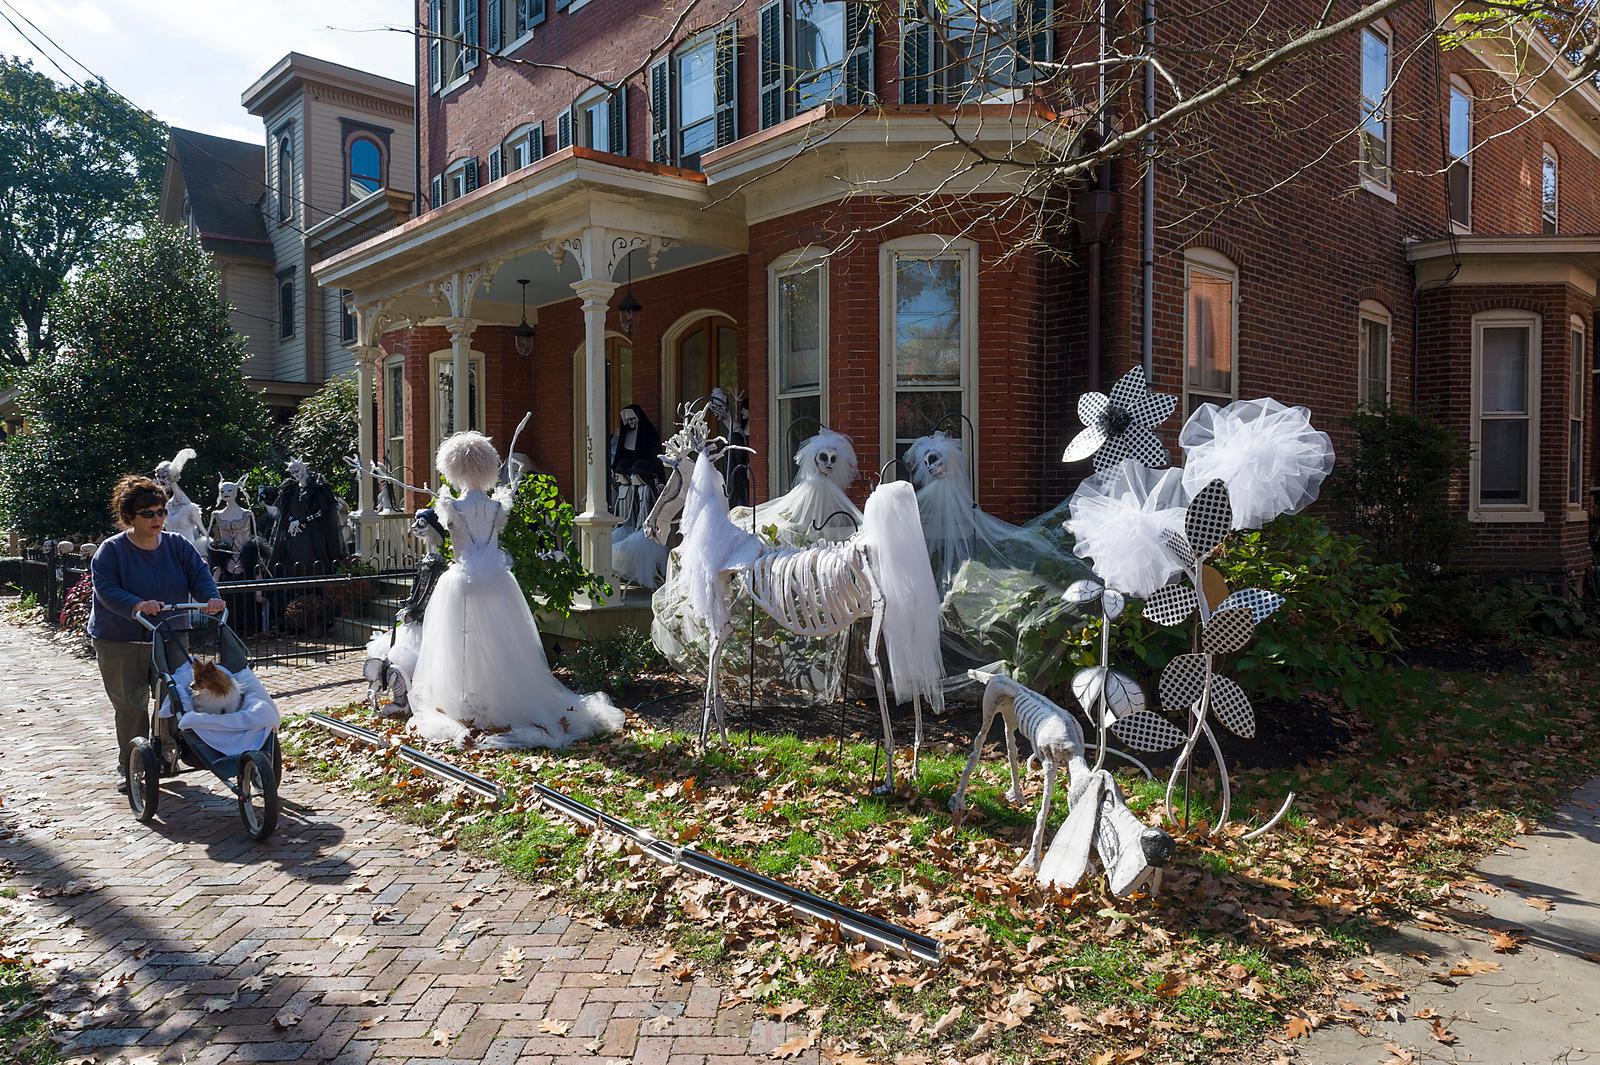 Scary homemade halloween yard decorations - Halloween In Lambertville Image 5 Of 10